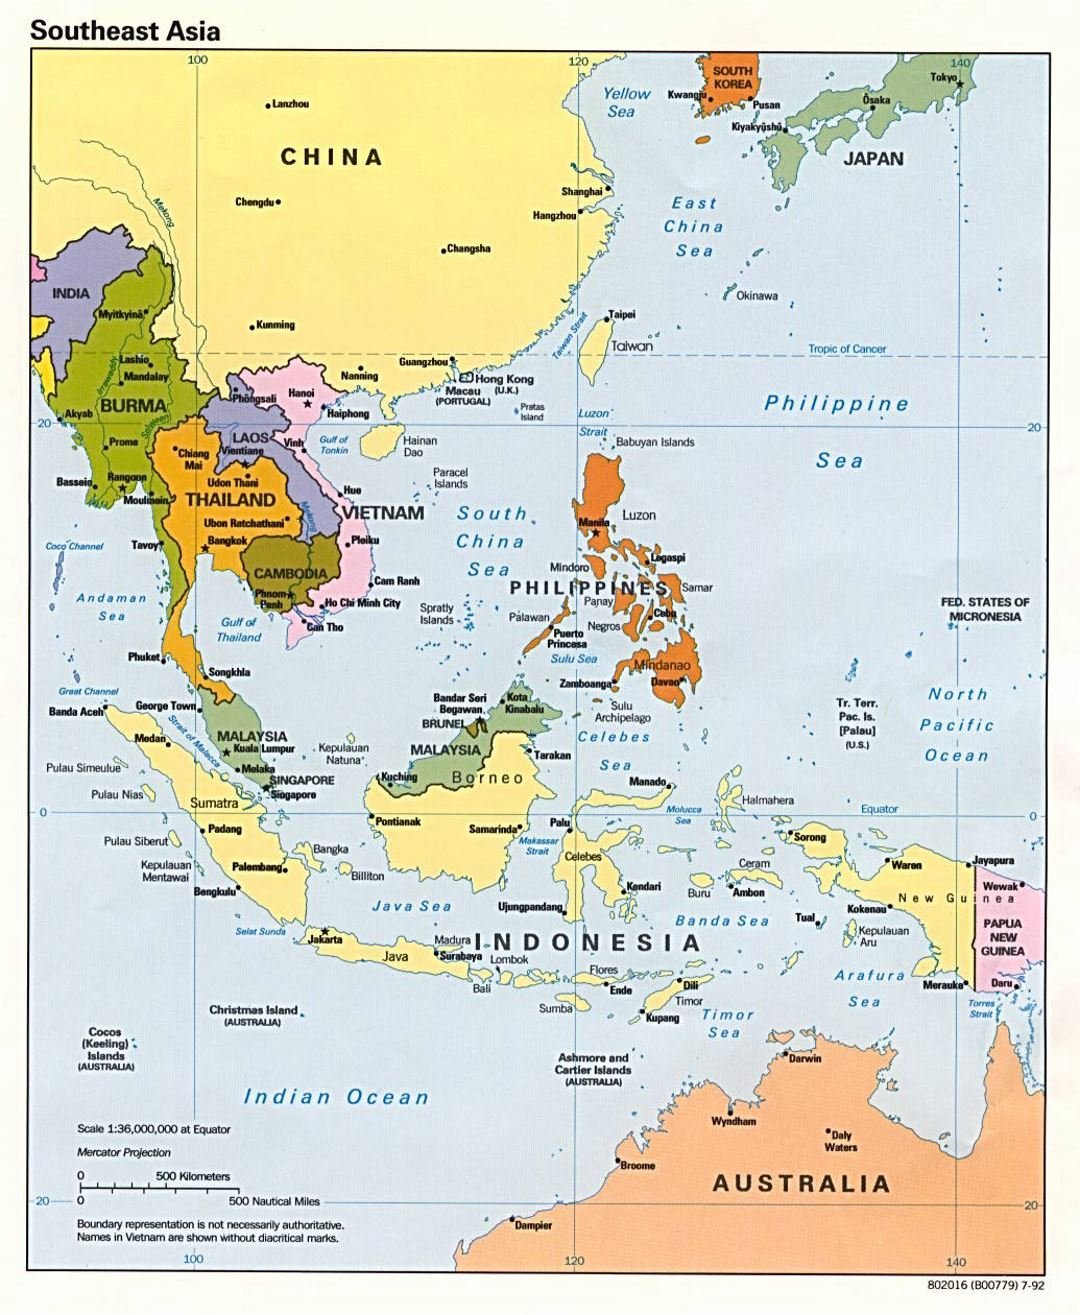 Detailed political map of Southeast Asia - 1992